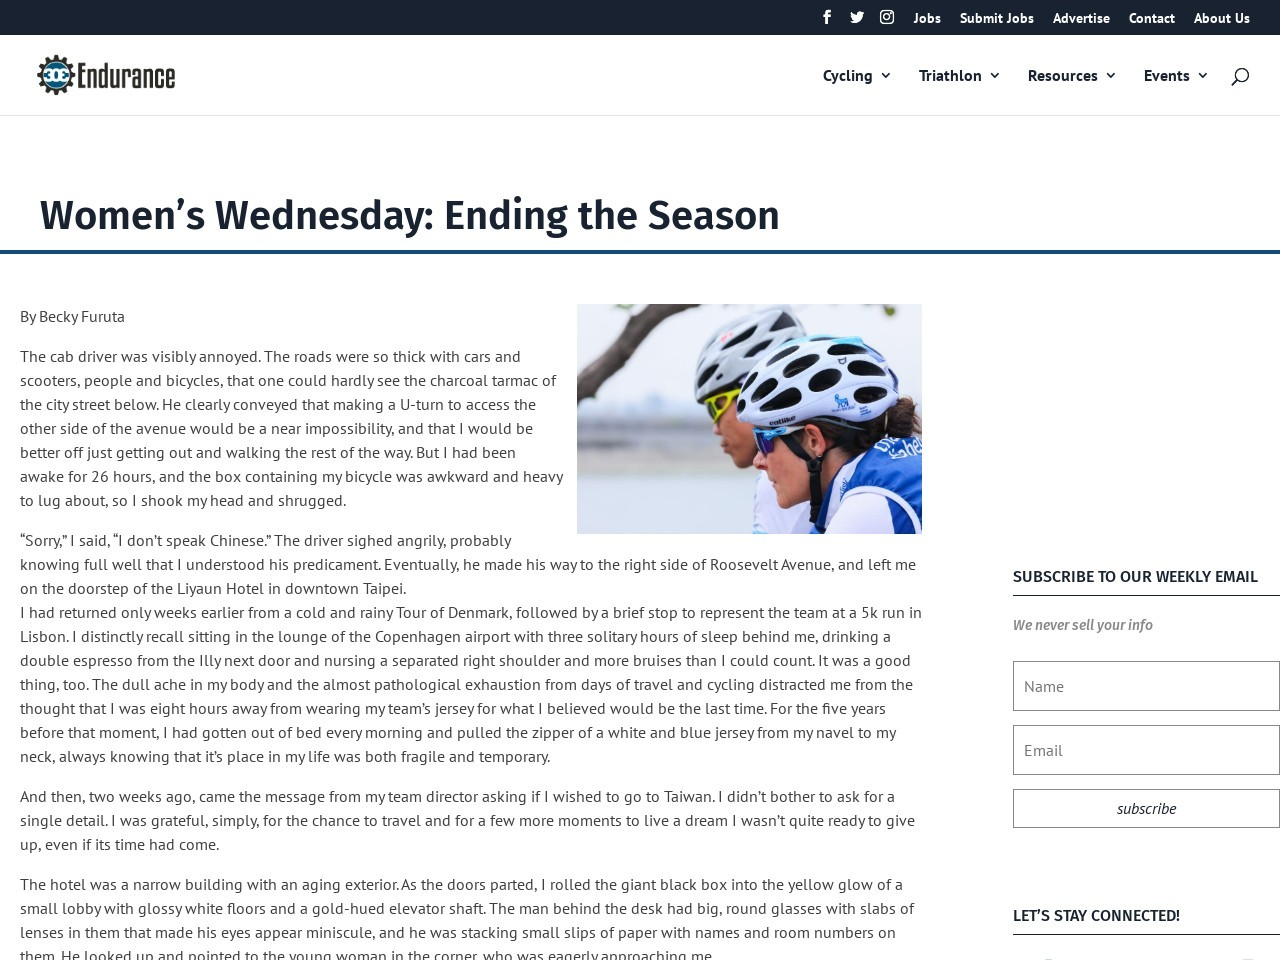 Women's Wednesday: Ending the Season